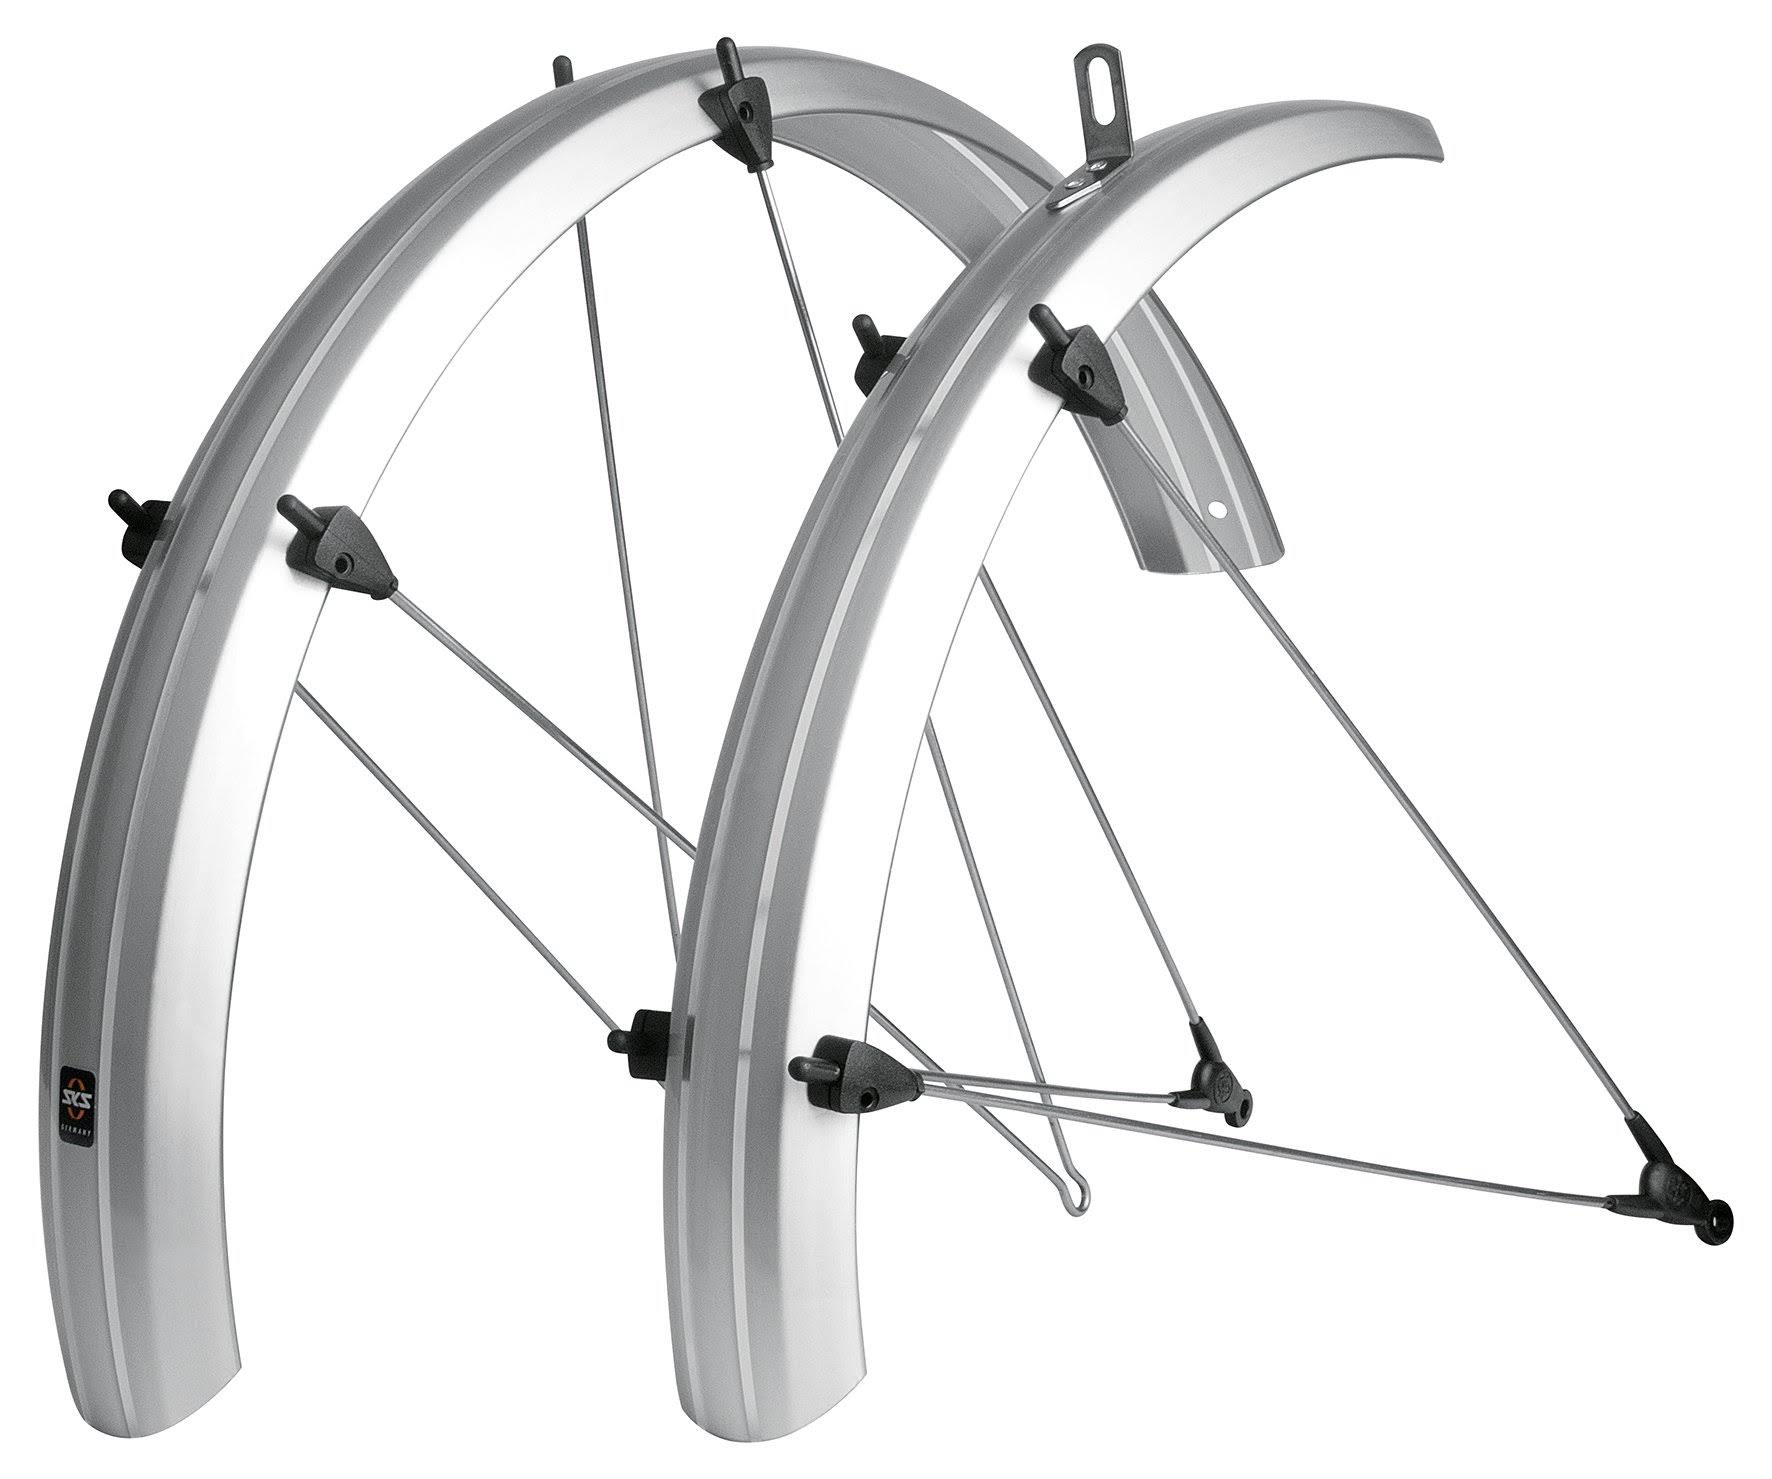 SKS B53 Bolt-On Recumbent Folding Bike Fenders - Silver, 53mm